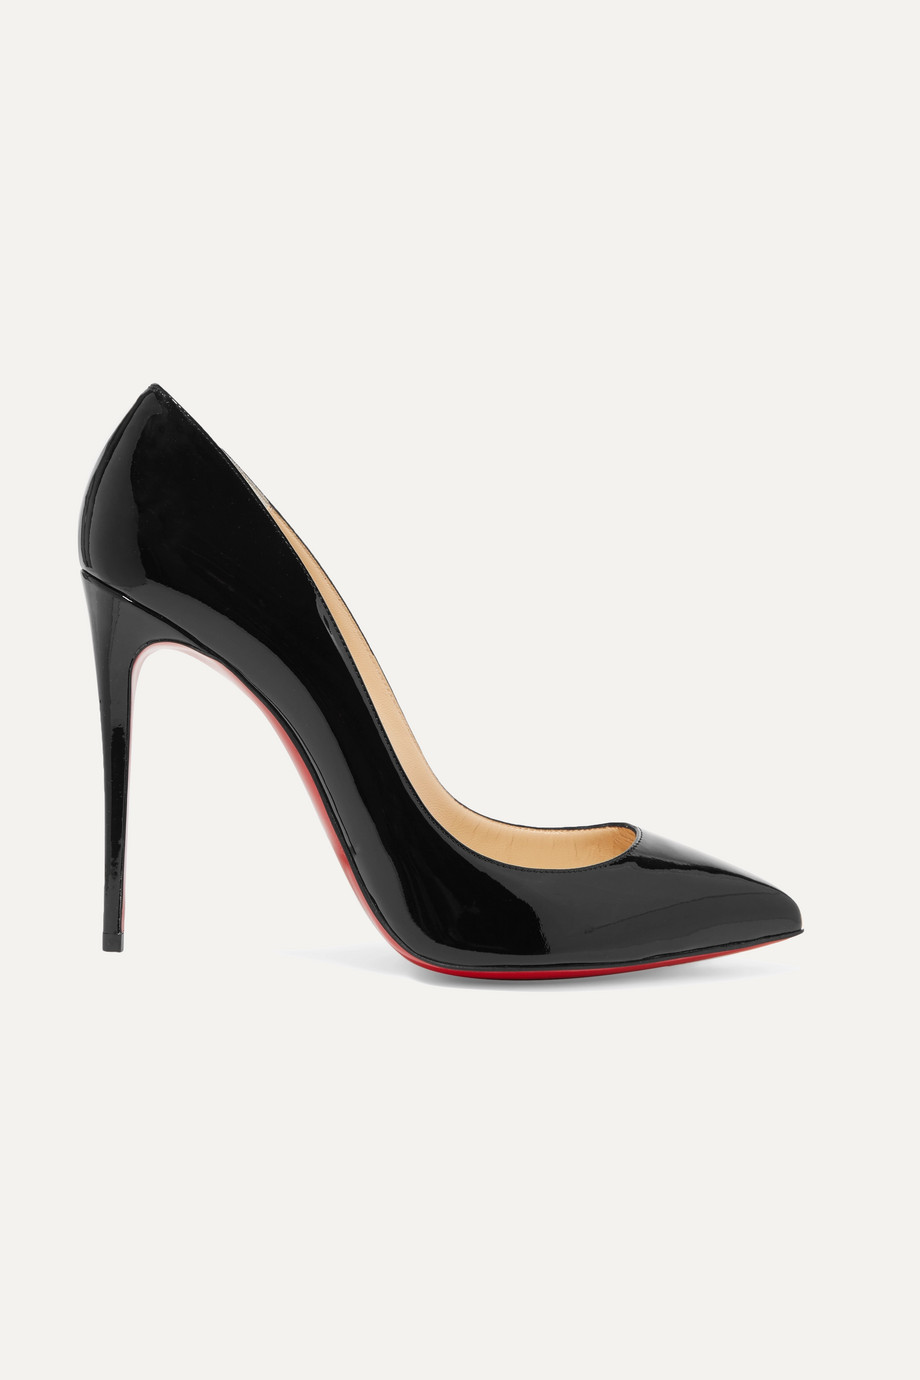 Christian Louboutin Pigalle Follies 100 漆皮高跟鞋